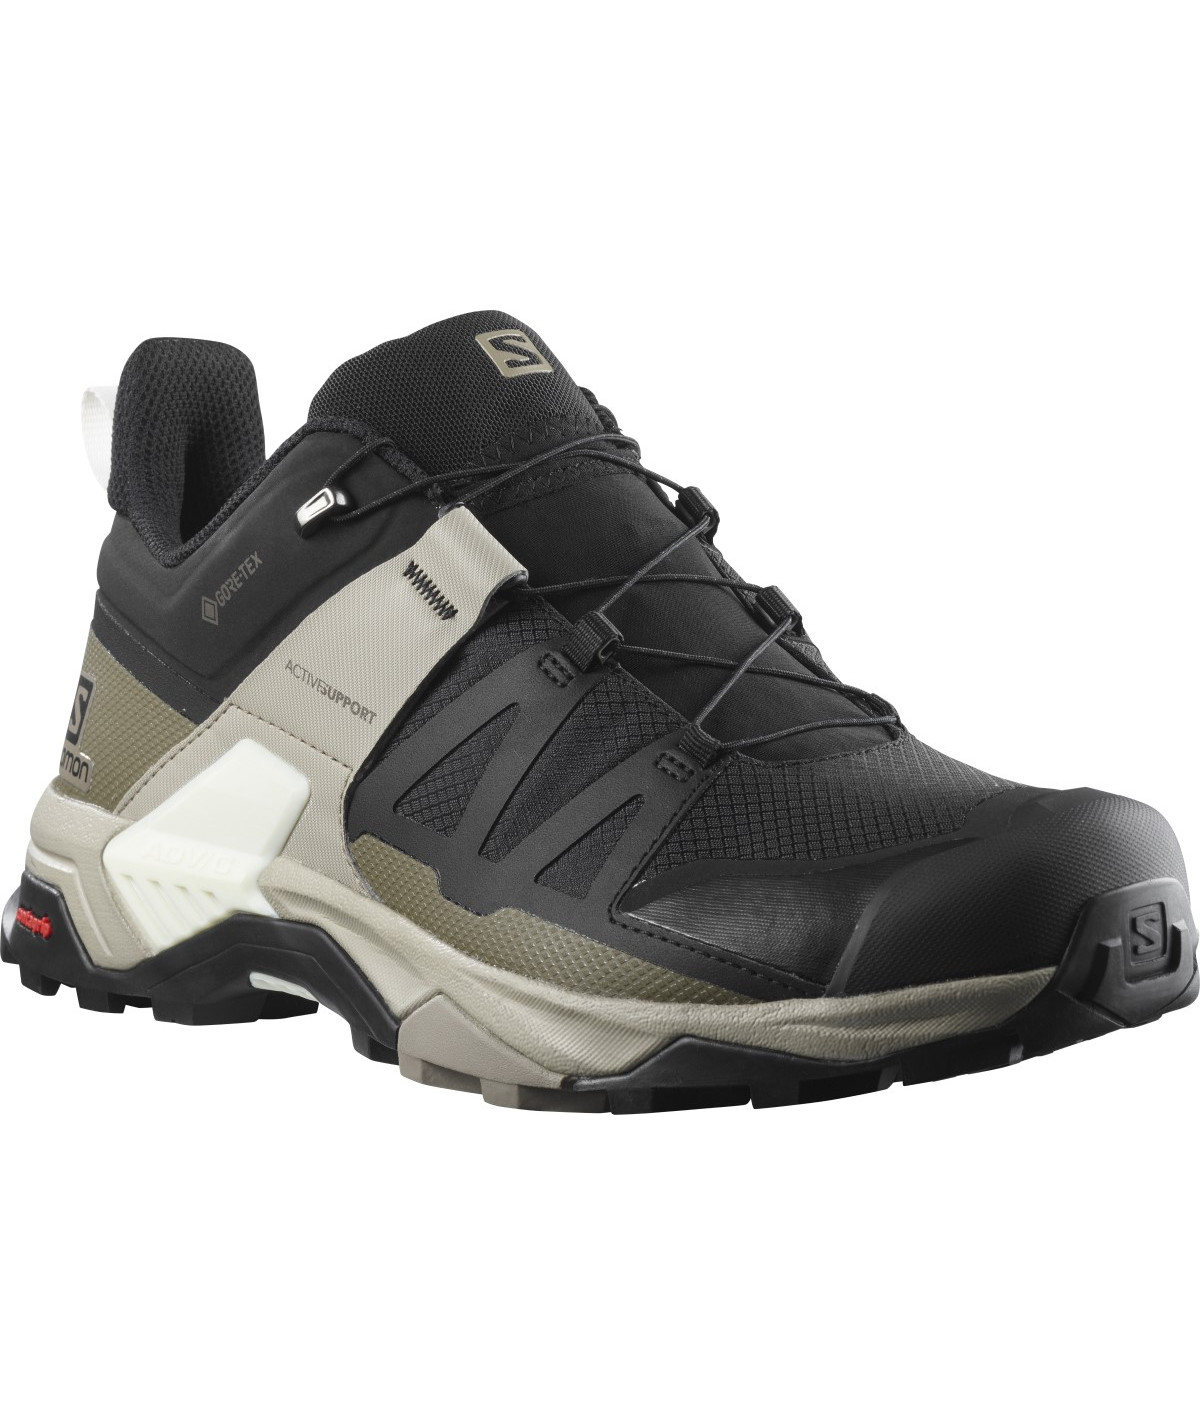 SALOMON - X ULTRA 4 GORE-TEX